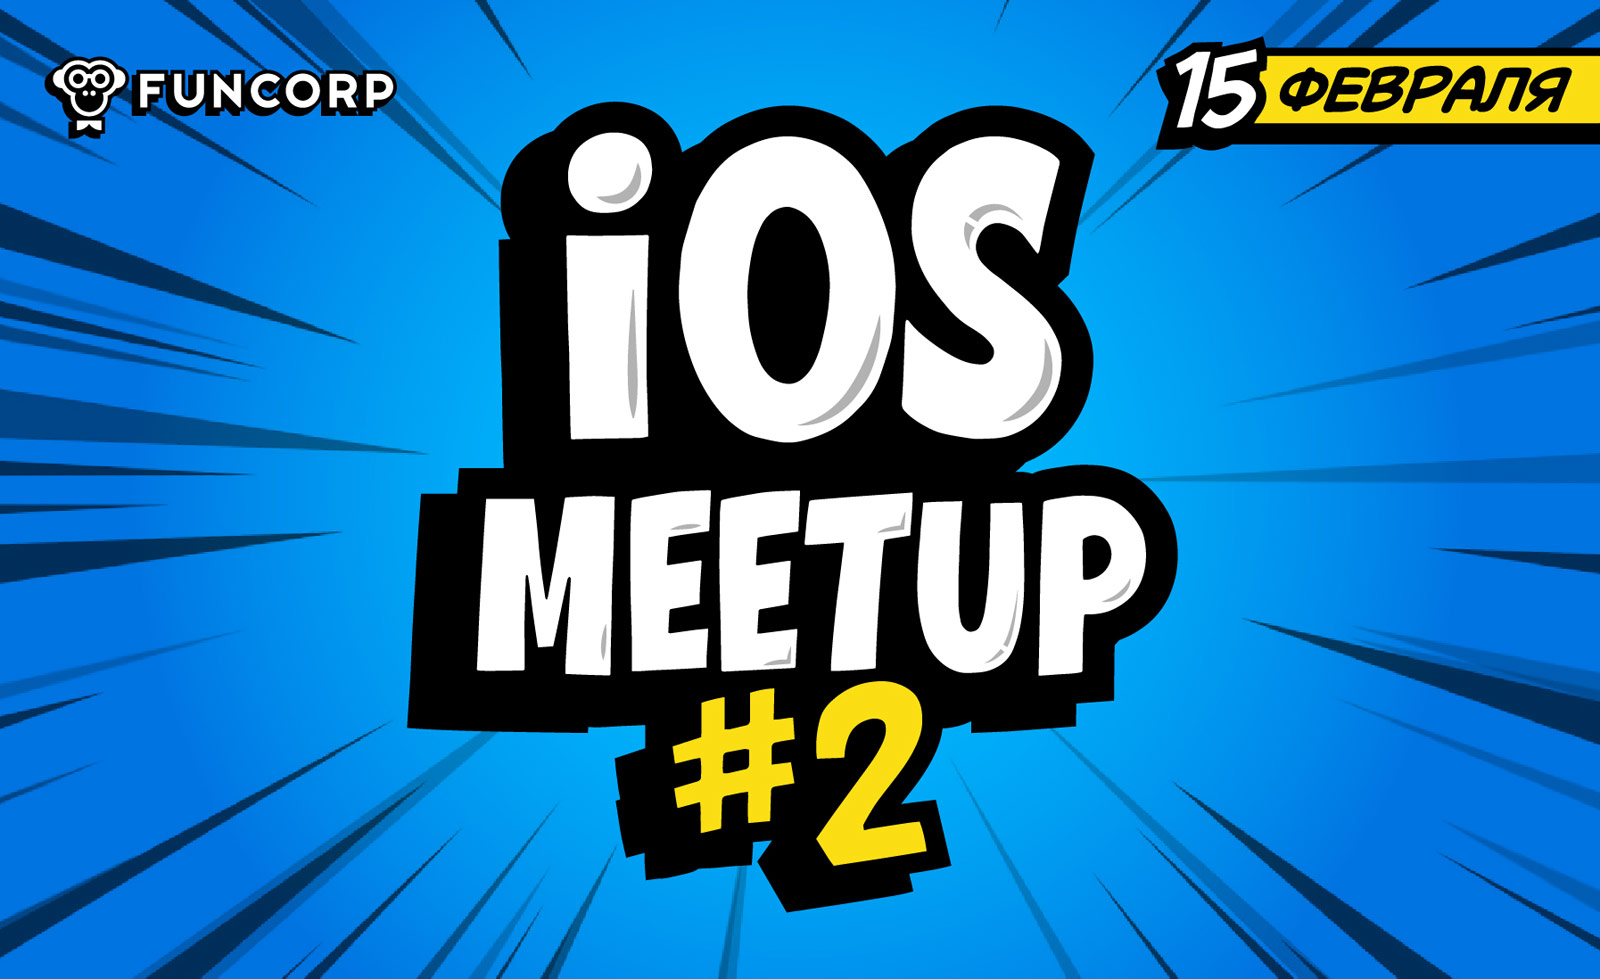 FunCorp iOS meetup#2 - 1